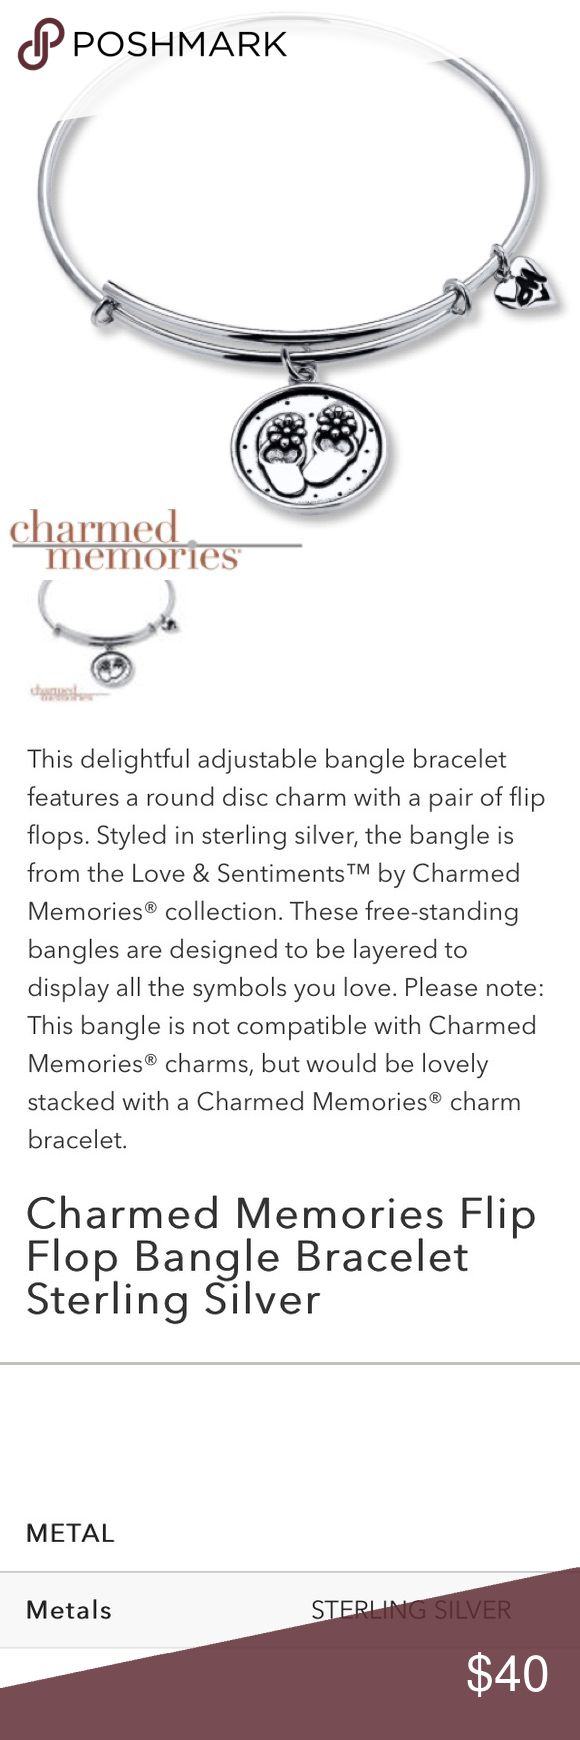 Kay charmed memories bangle bracelet - Brand New Sterling Silver Flipflop Bangle Bracelet Kay Jewelers Bangle And Sterling Silver